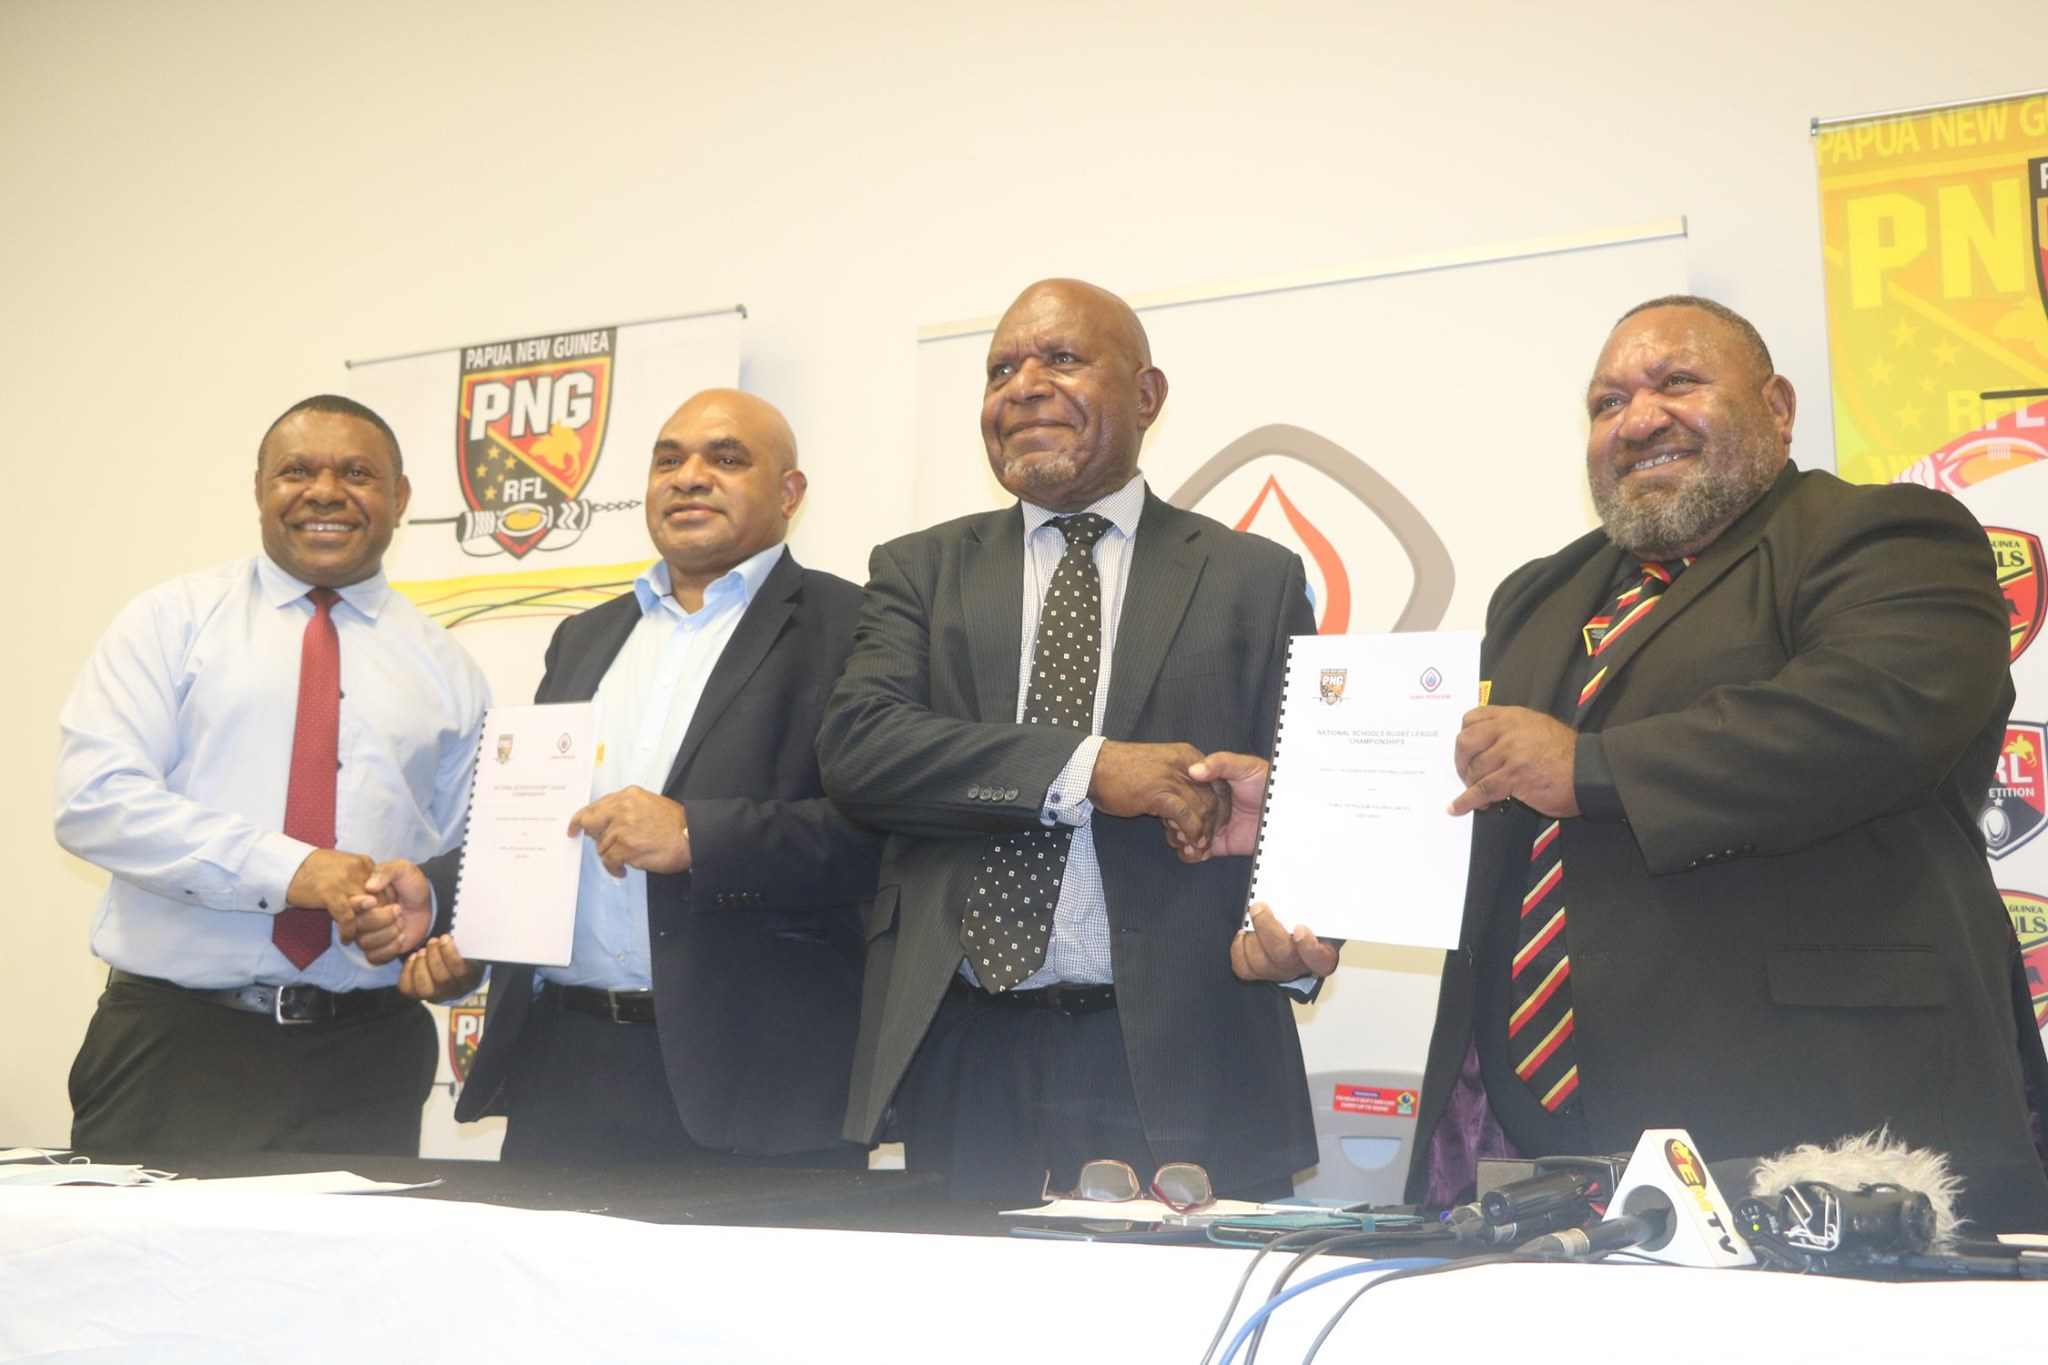 Kumul Petroleum announces naming rights Sponsorship for PNG National Schools competitions